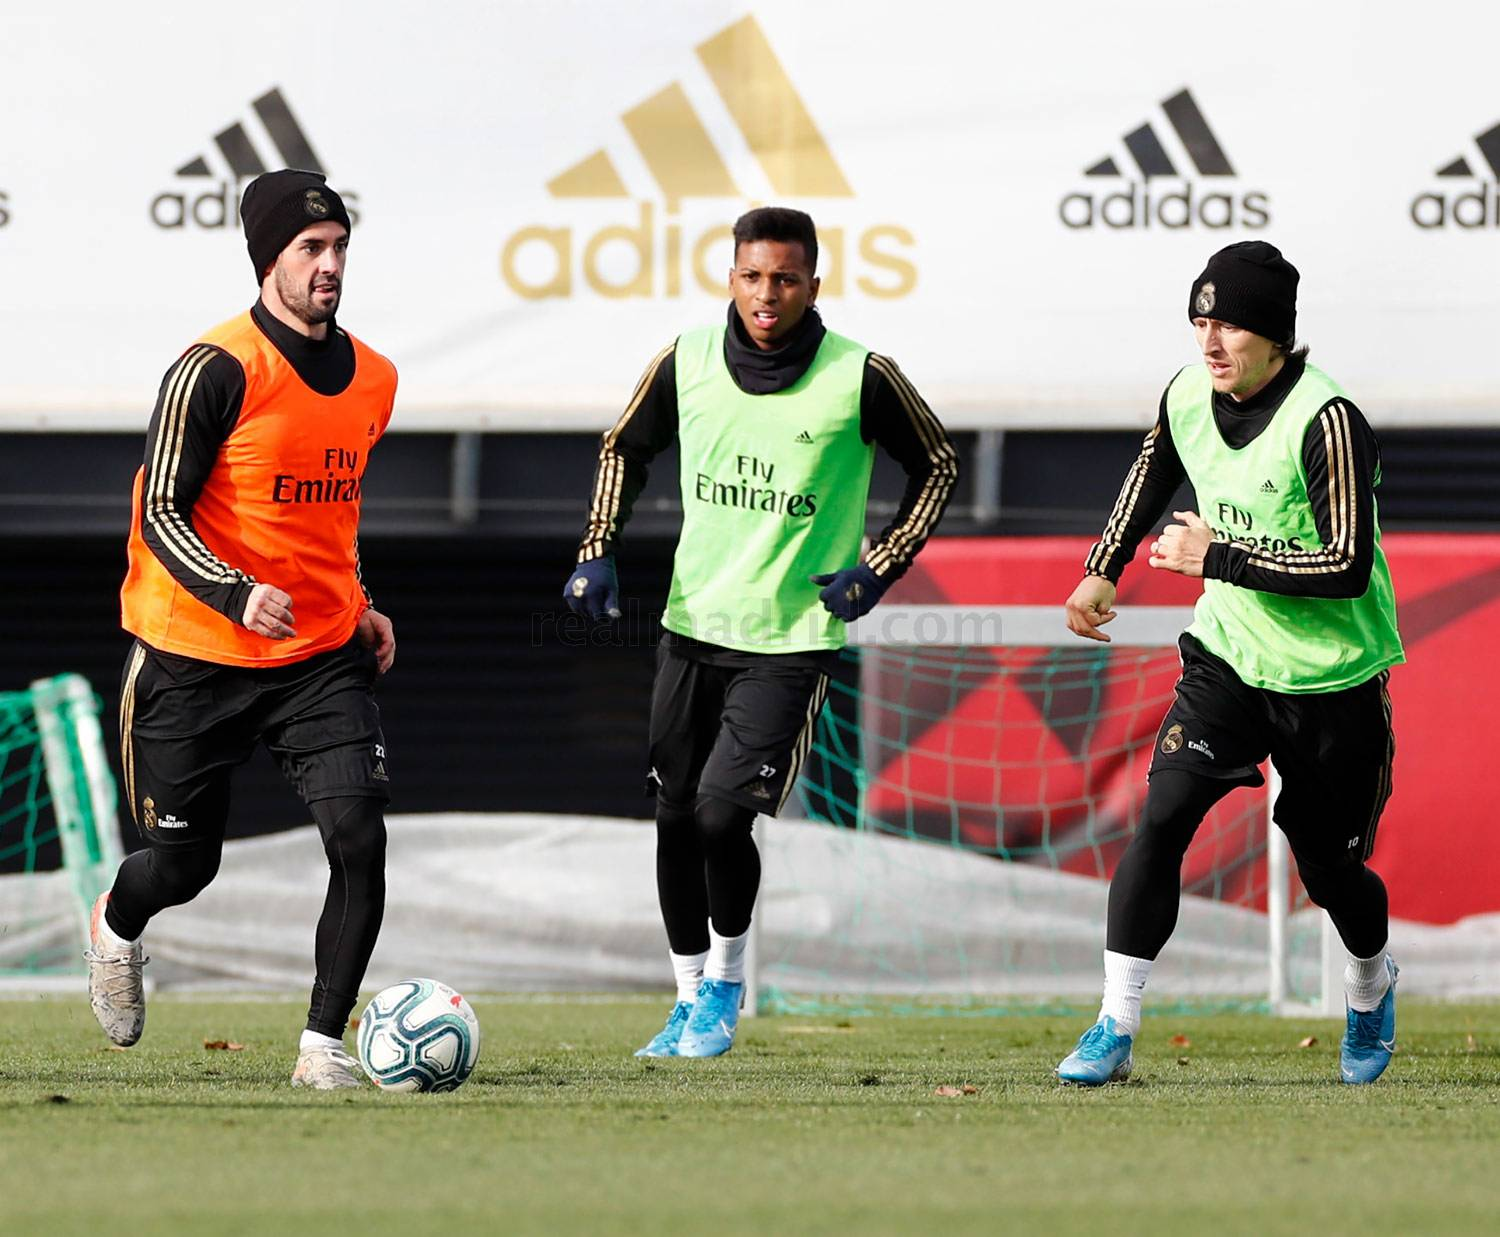 Real Madrid - Entrenamiento del Real Madrid  - 13-12-2019